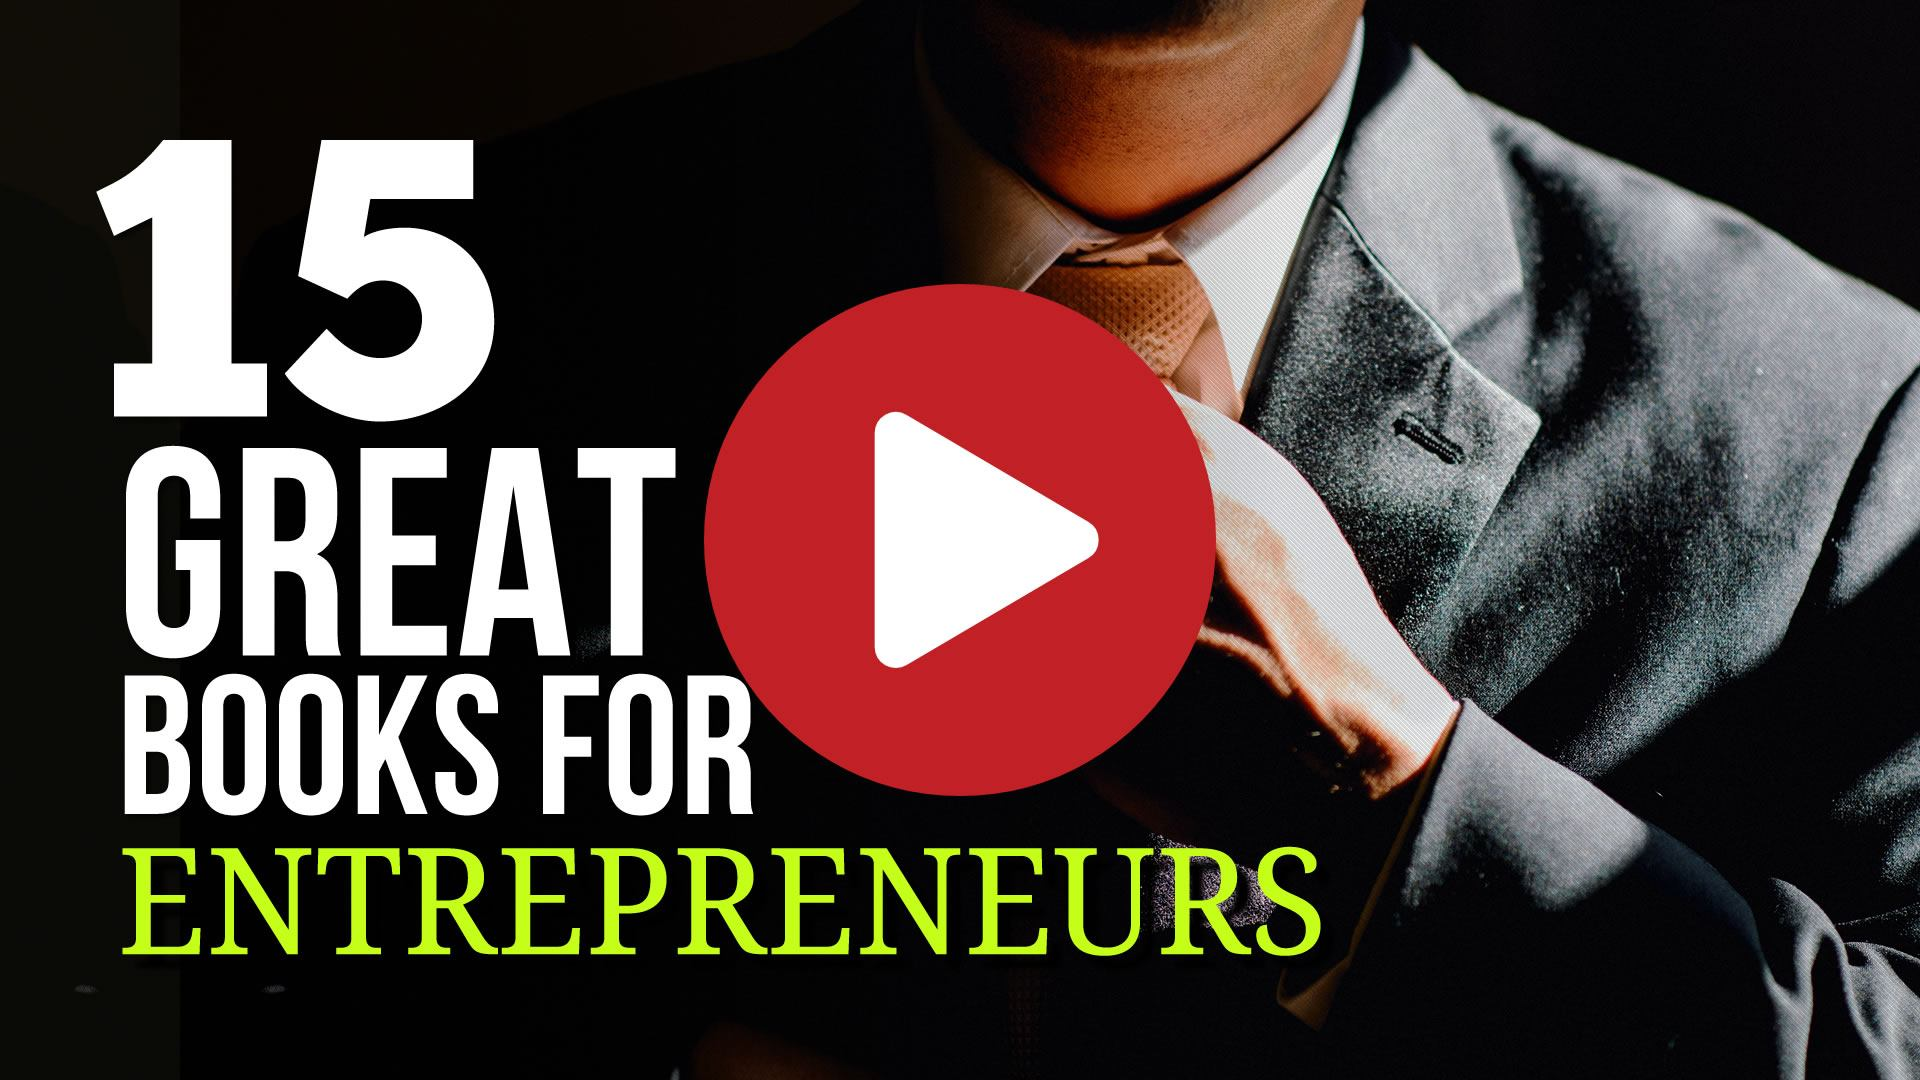 15 Great Books for Entrepreneurs on Launching and Running a Business